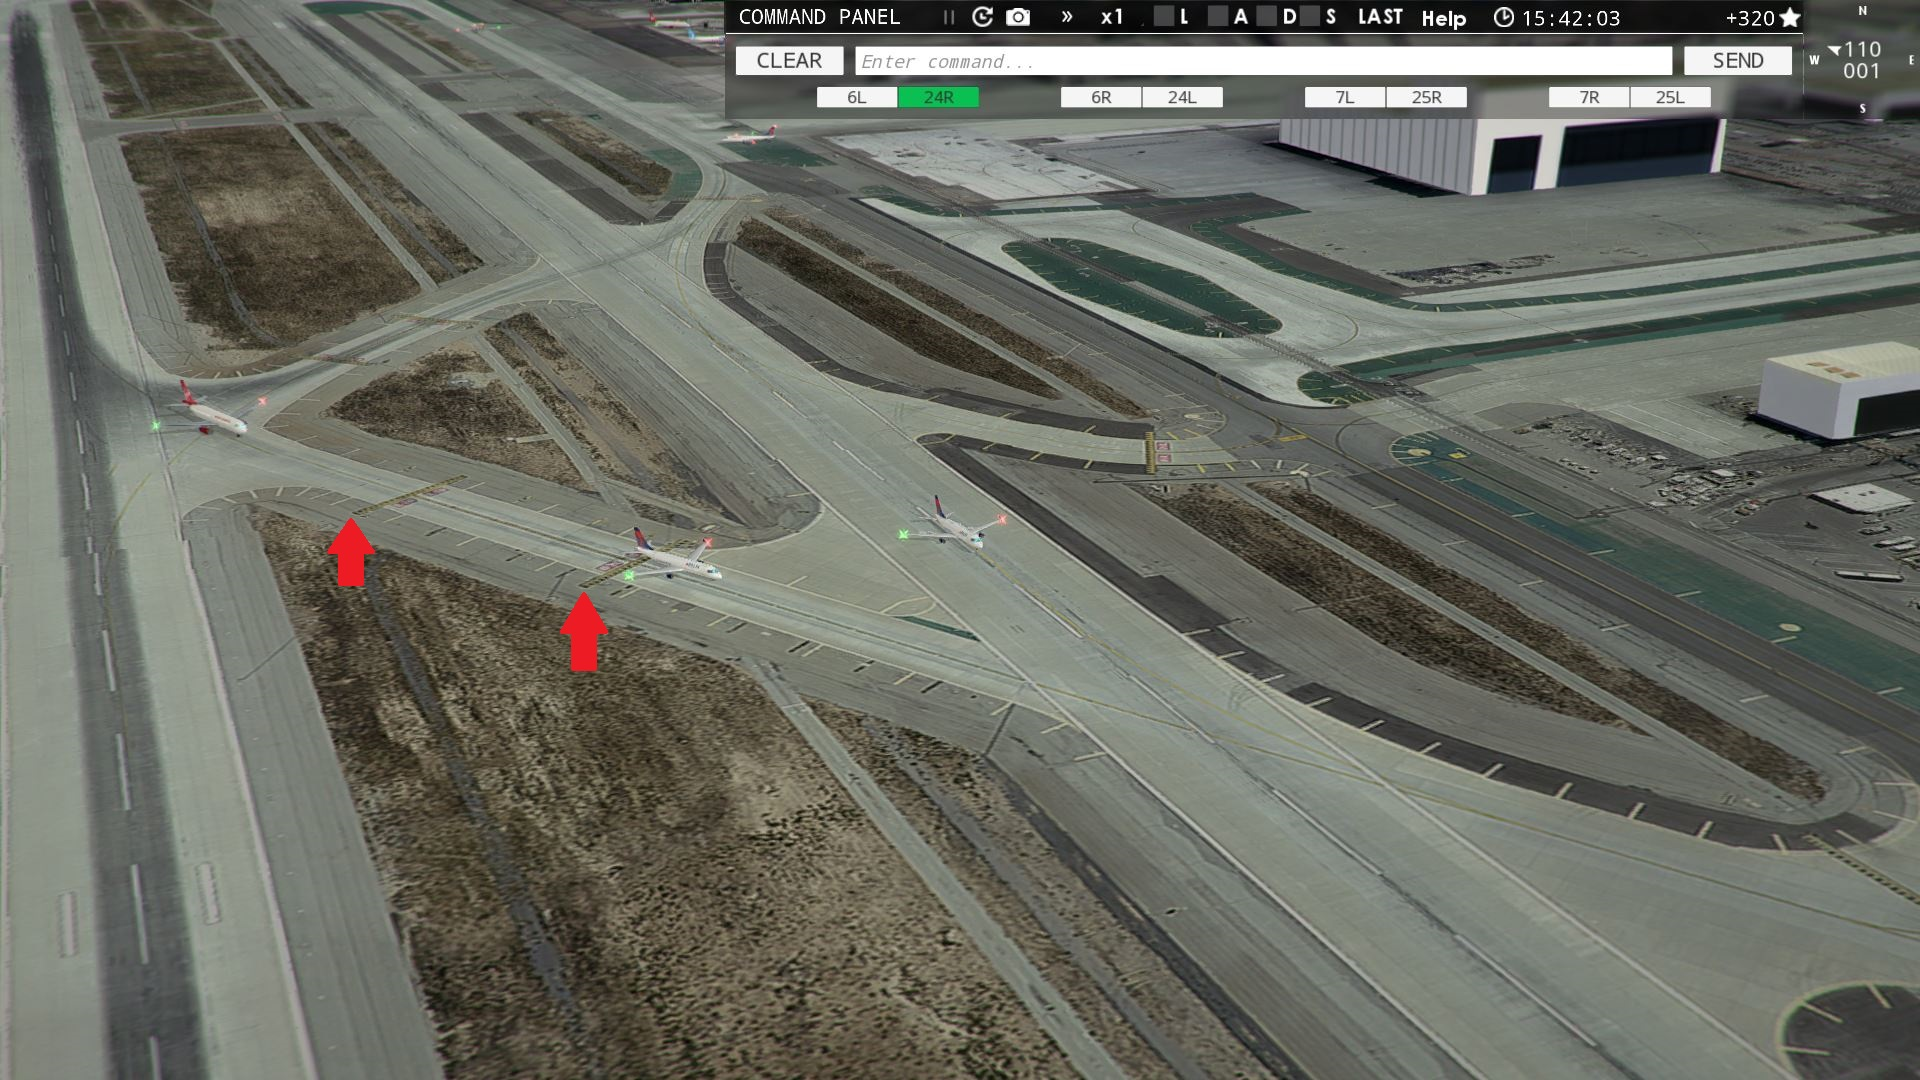 Tower!3D Pro - LAX 24L & 24R Taxiway Z Hold Points - ATC